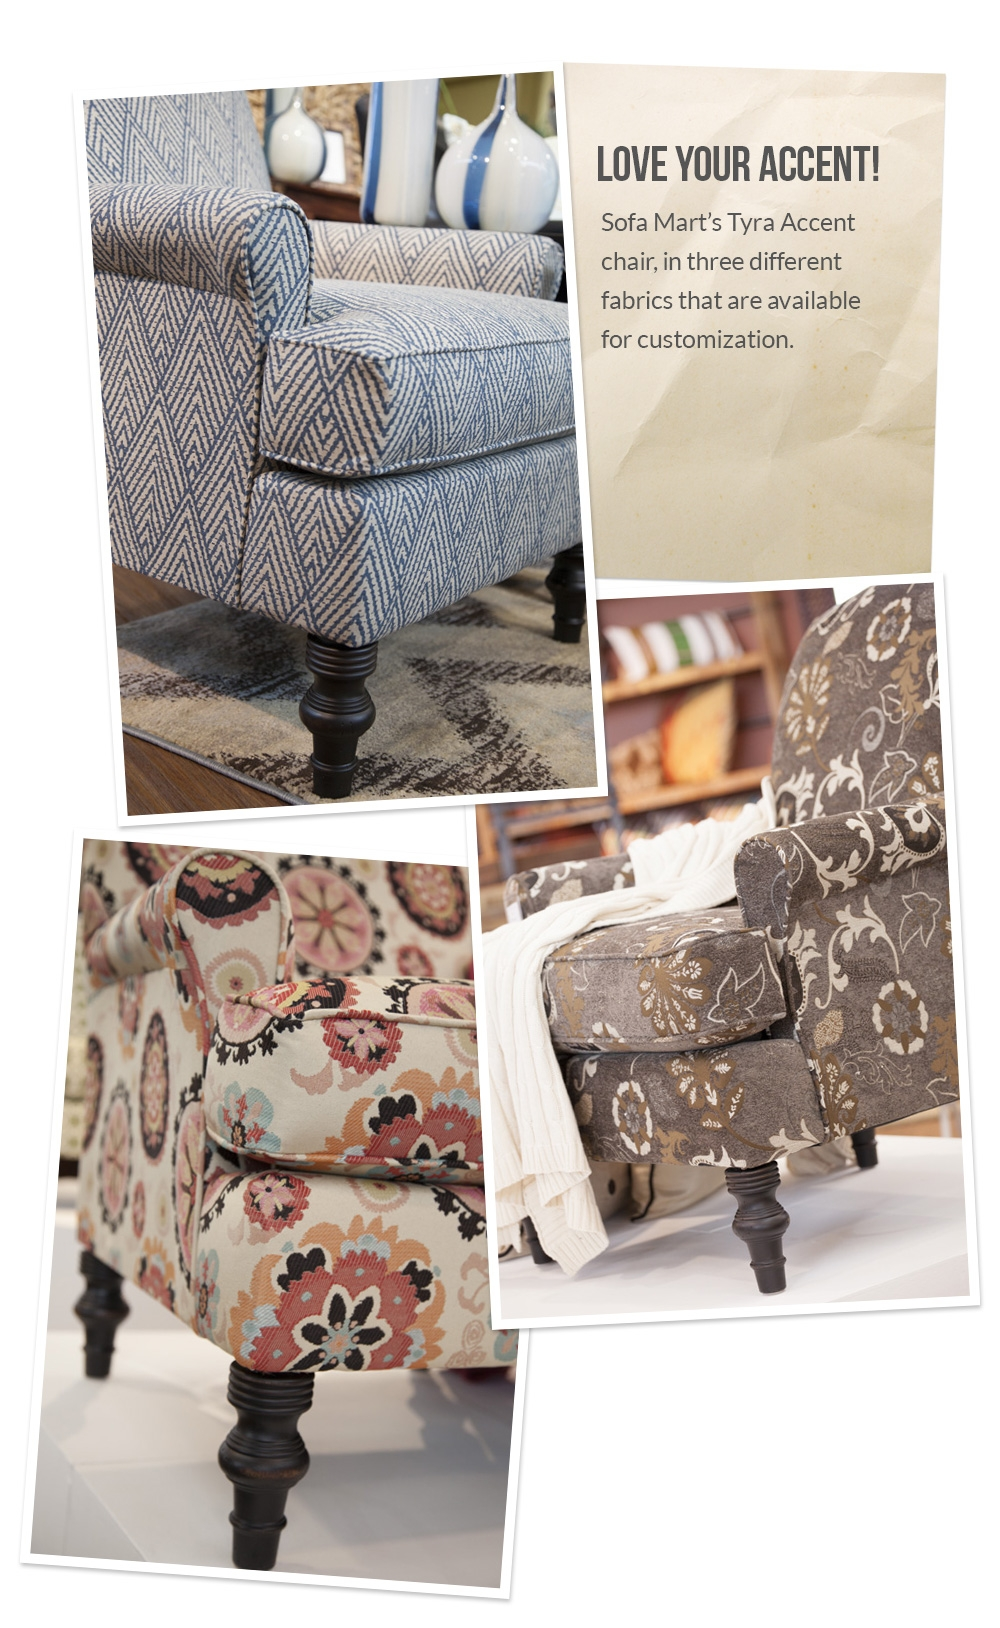 Love Your Accent Custom Accent Chair Fabrics Front Door Intended For Sofa Mart Chairs (Image 7 of 15)